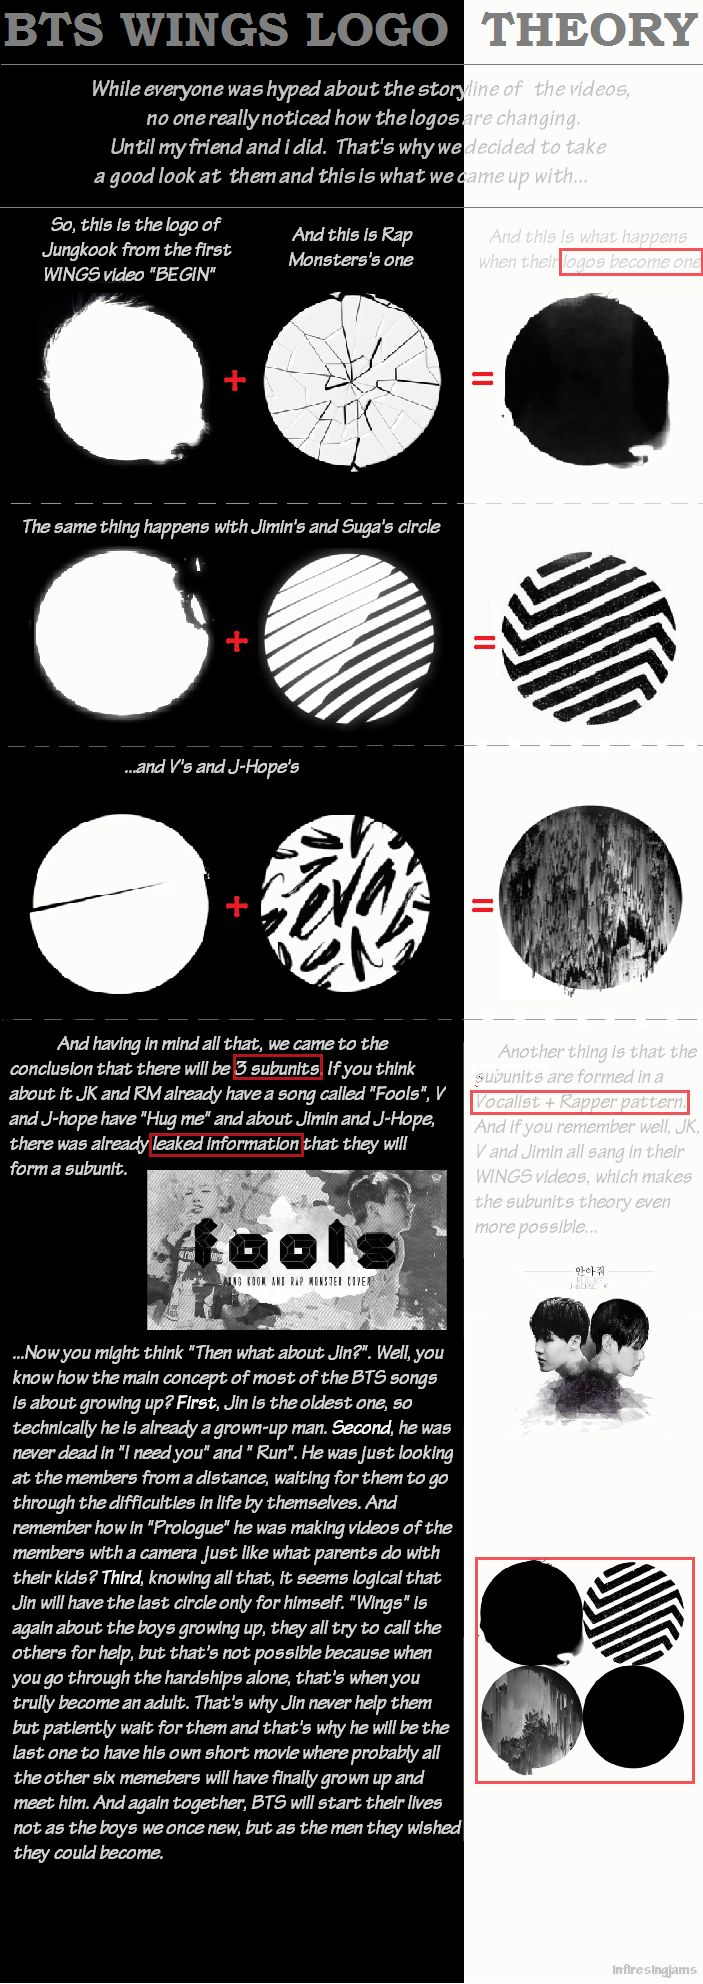 For one, I actually did notice that the logo was changing, but I just nvr took time to figure it out for myself. Also, this makes sense but what I find weird is that, I've previously heard the connections are supposed to be RapMon/V, Suga/JK, and J-Hope/Jimin. But who knows? Maybe all will be revealed after their comeback.